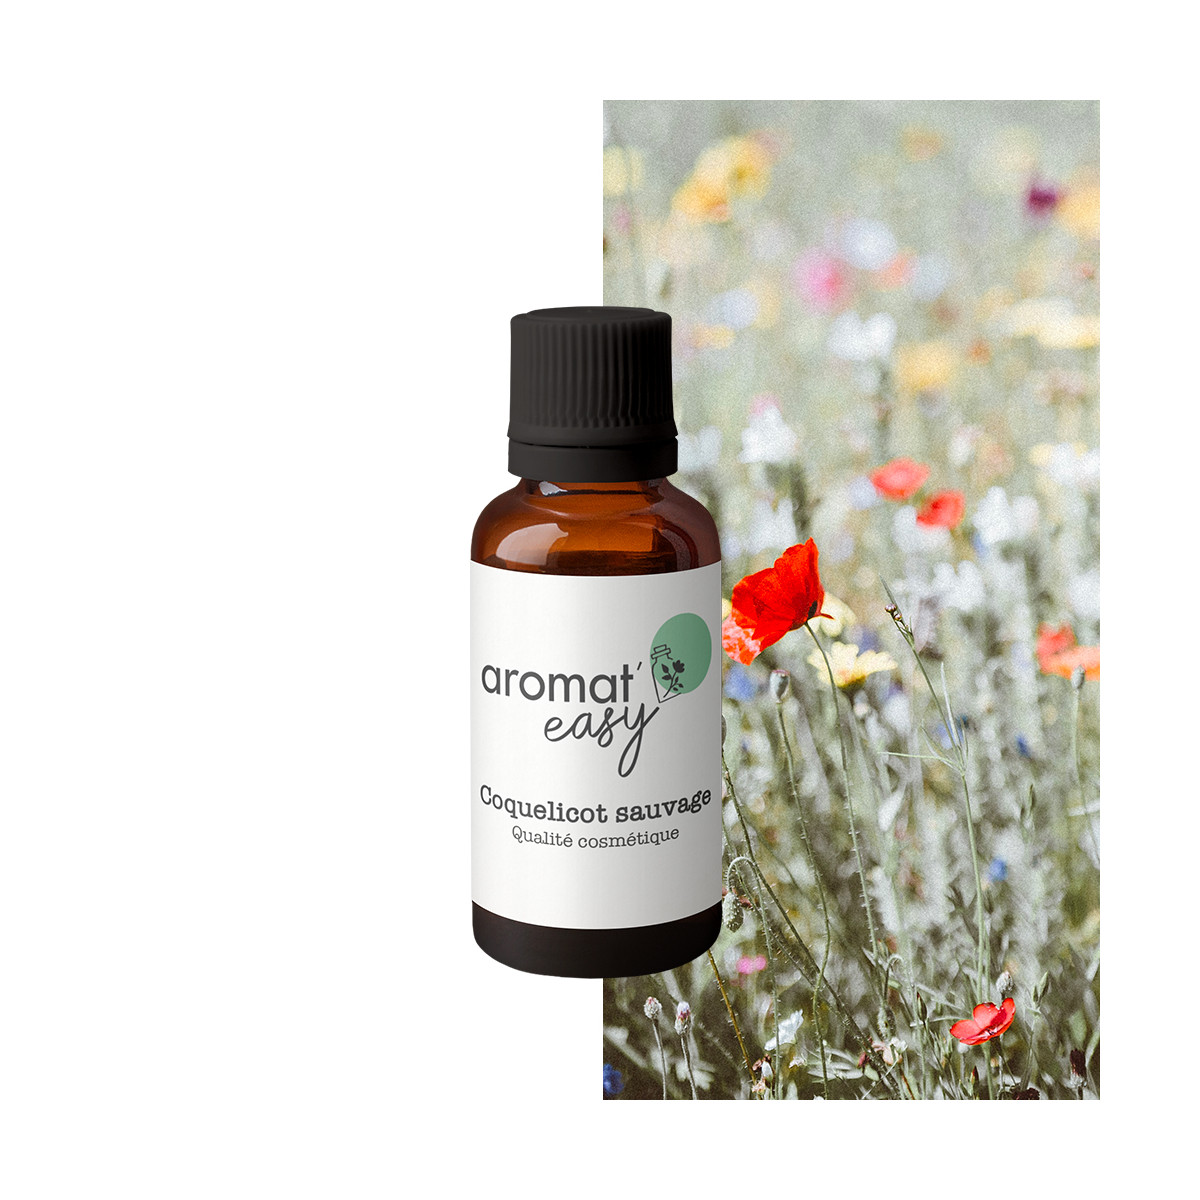 Fragrance Coquelicot sauvage